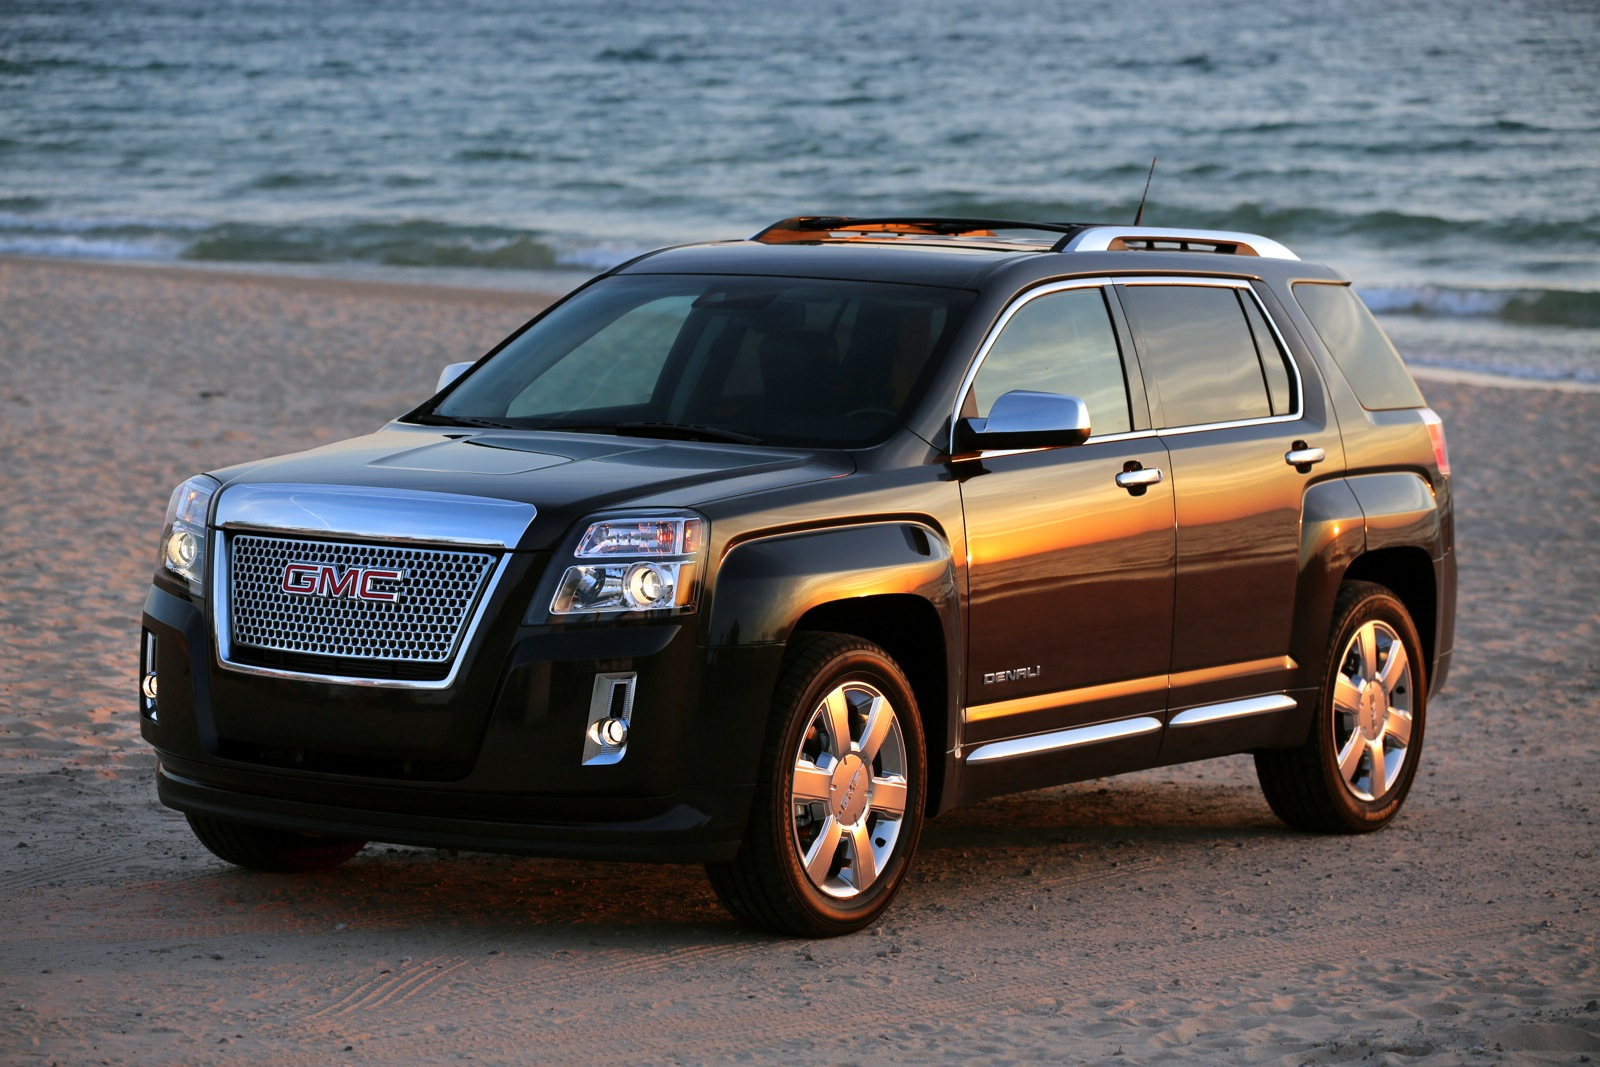 terrain and review s reviews v car denali original terrian test awd photo gmc driver